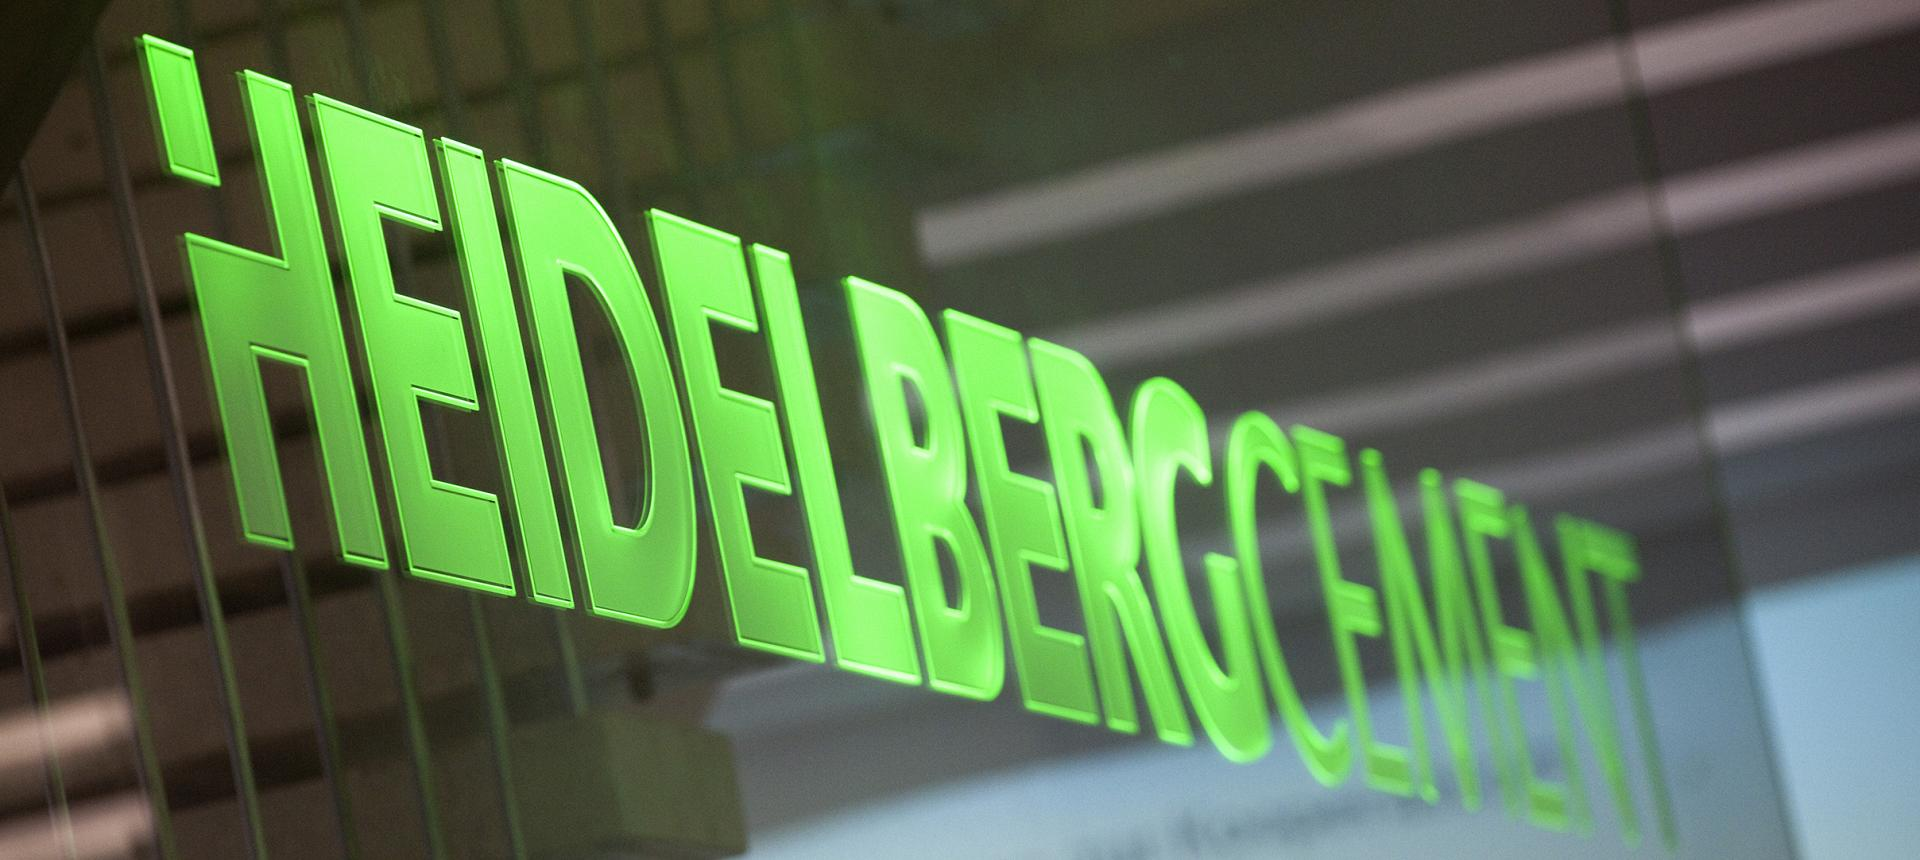 HeidelbergCement HQ.